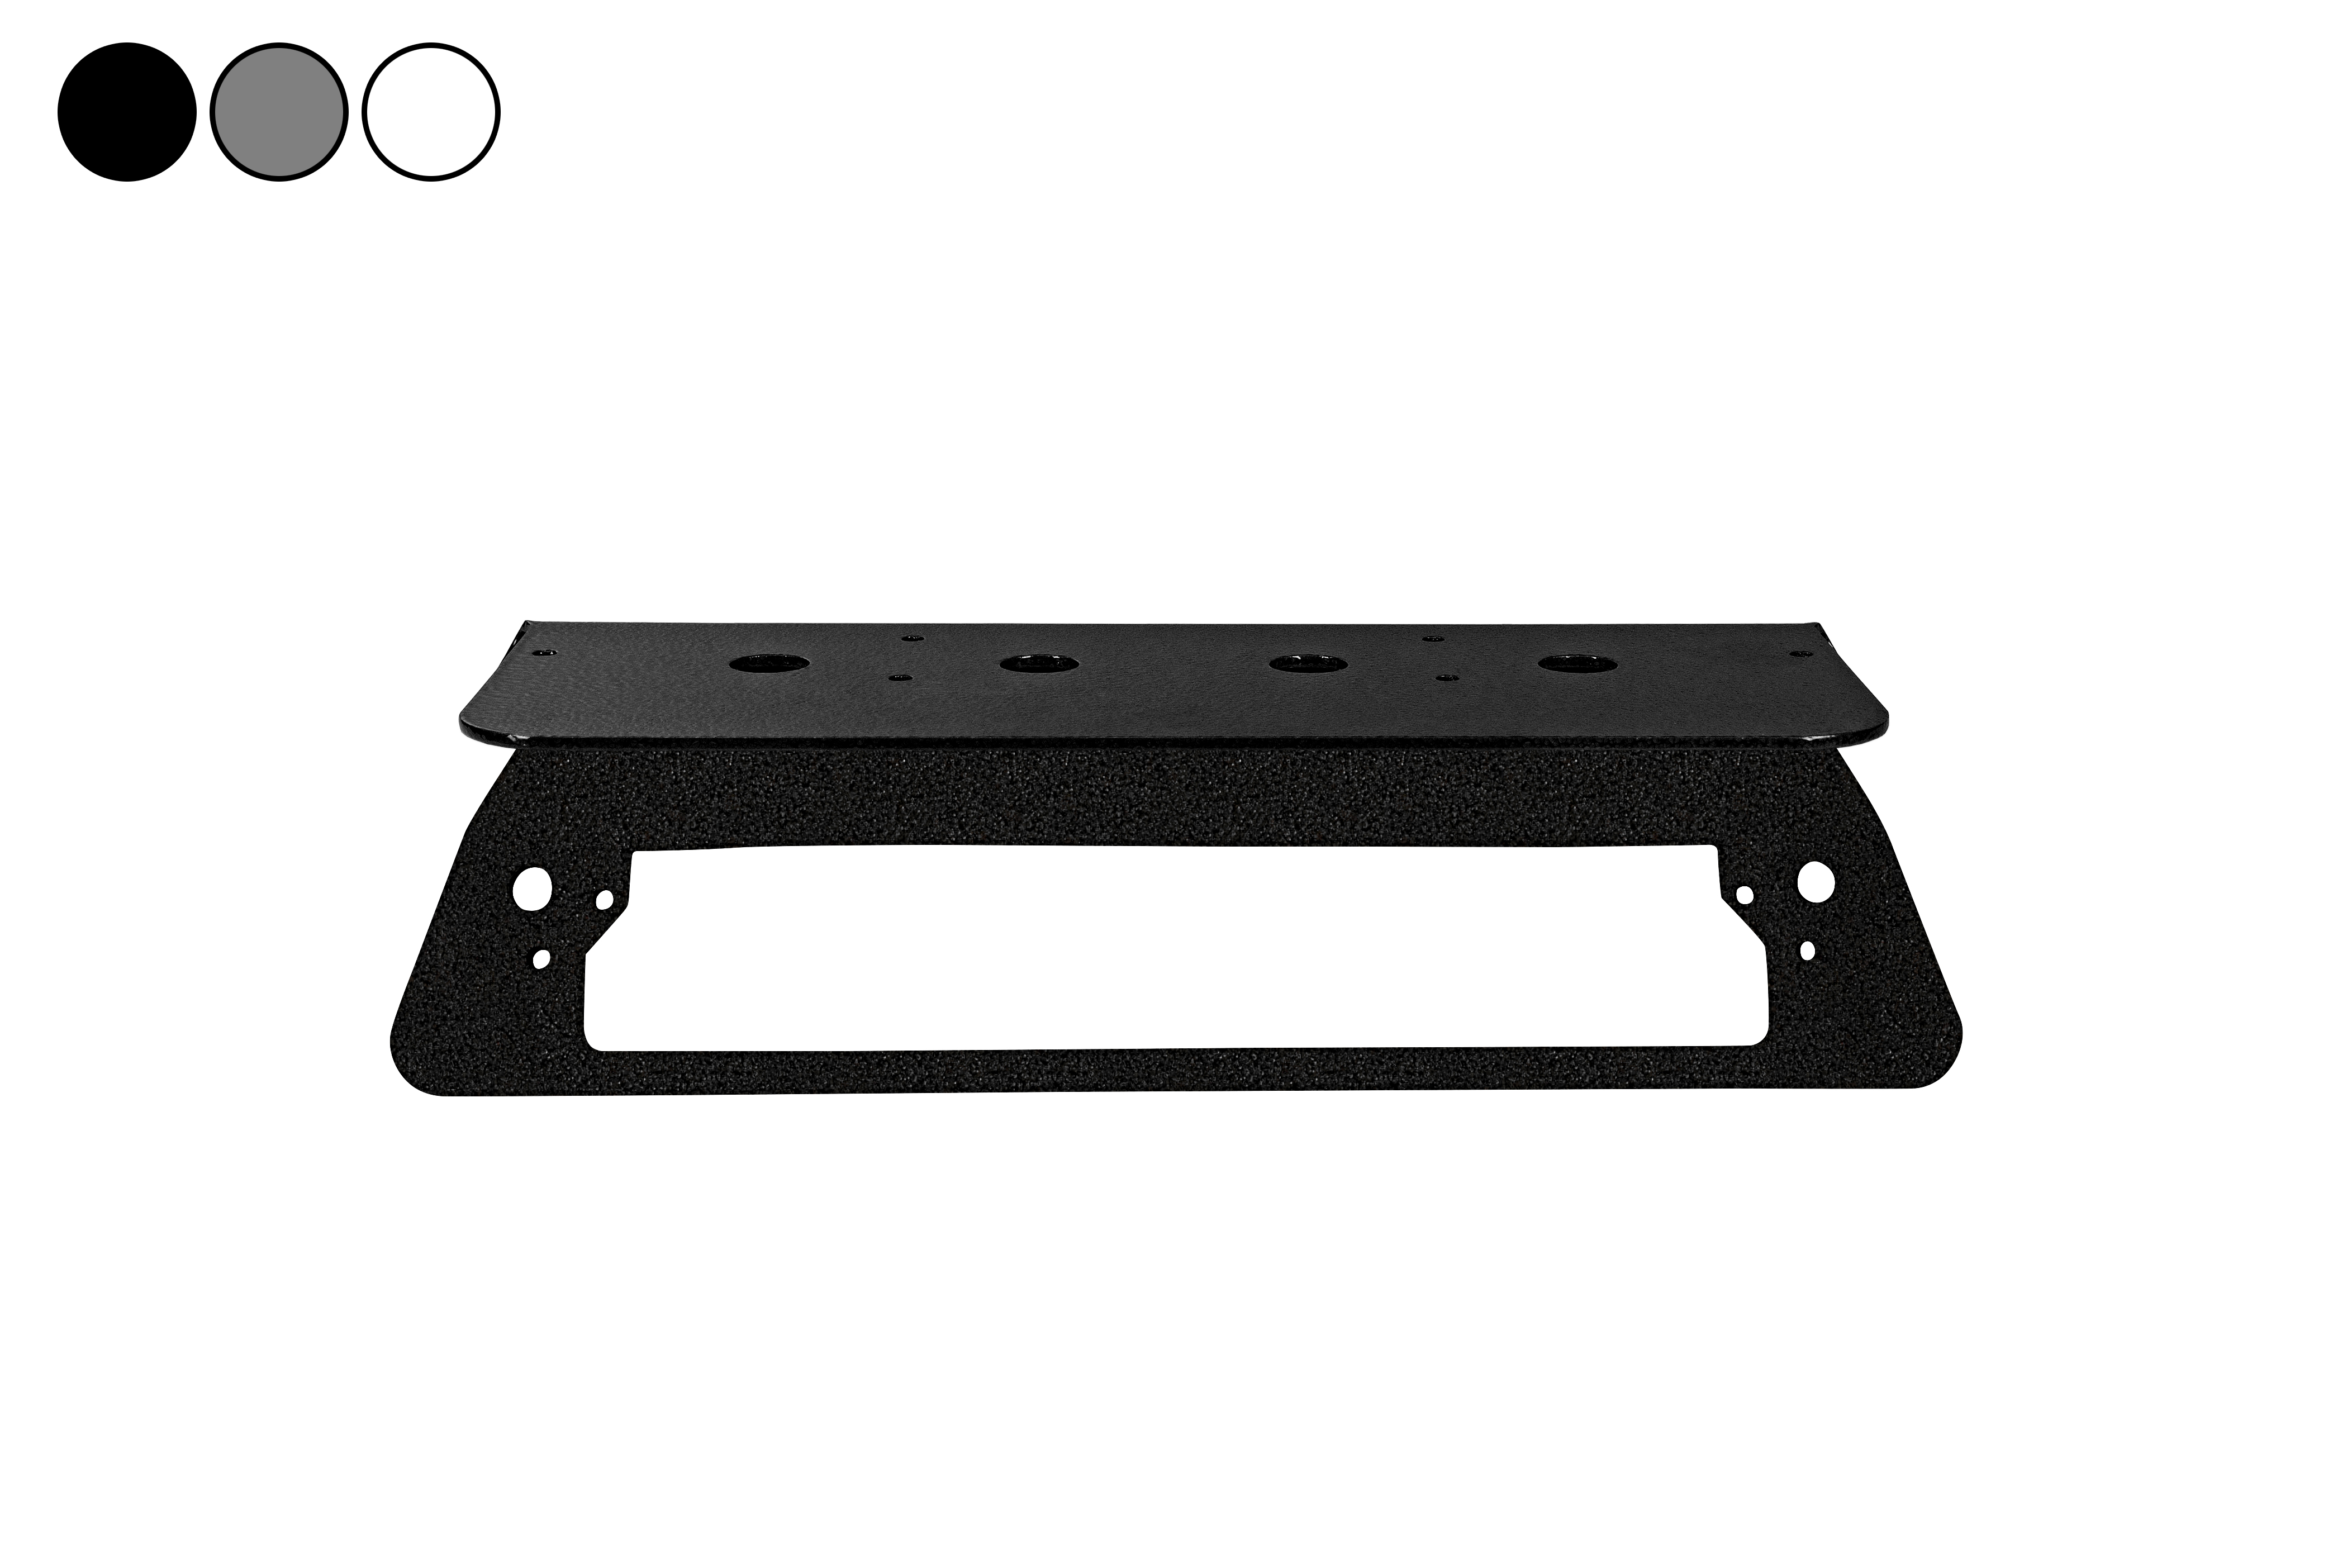 Antenna Permanent Mounting Plate for 2015 Chevrolet Silverado 3500 Truck